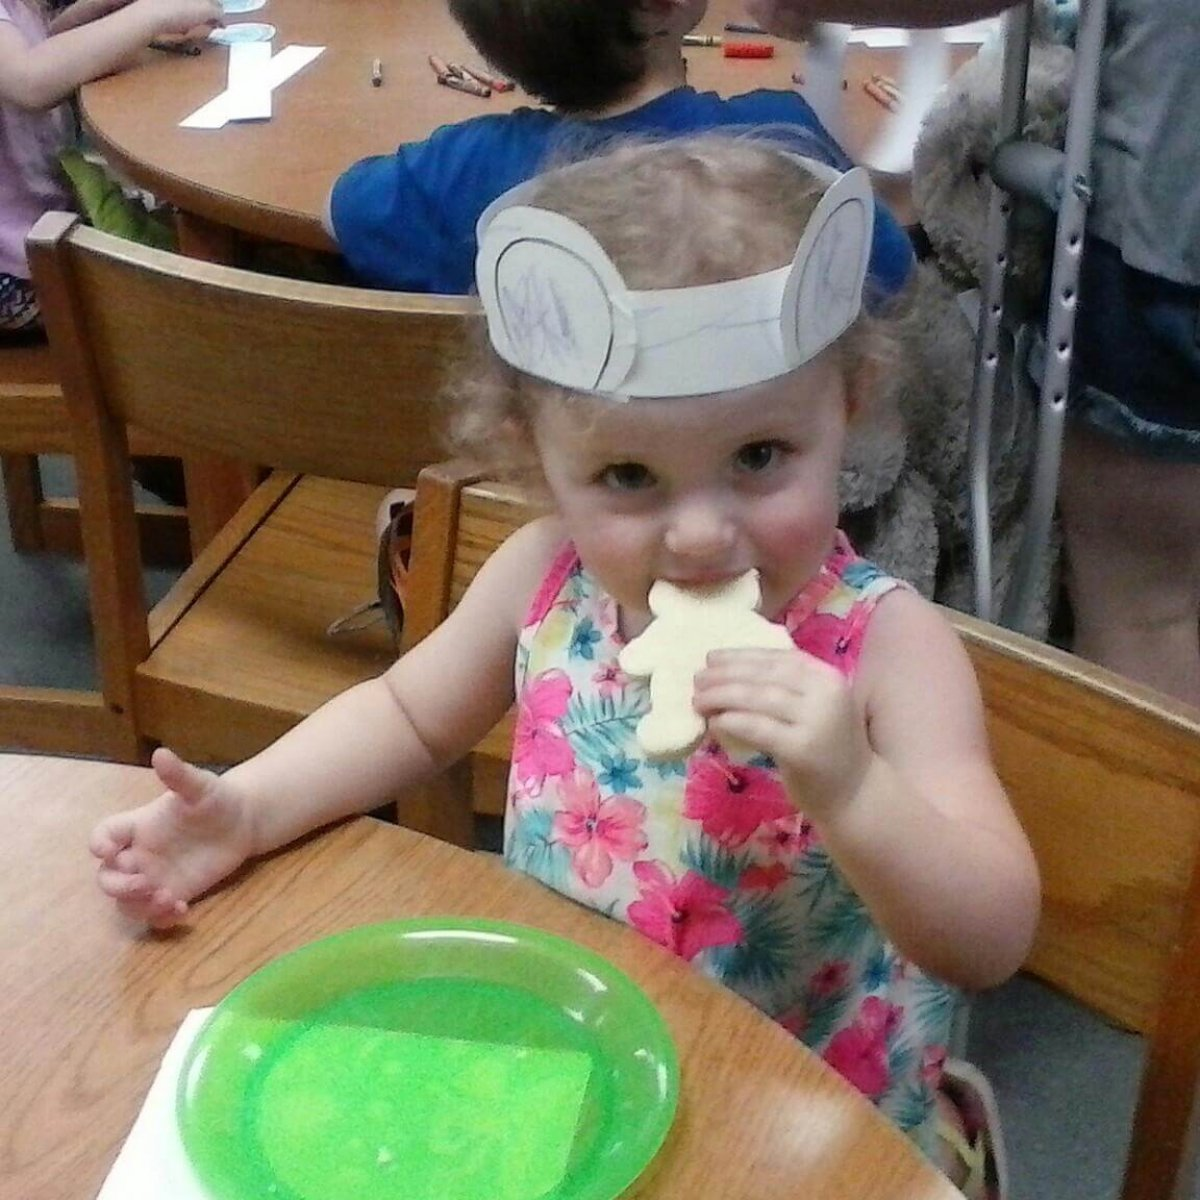 A little girl wearing a flowered dress and a paper headband with teddy bear ears takes a bite out of a cookie at one of the Teddy Bear Teas.